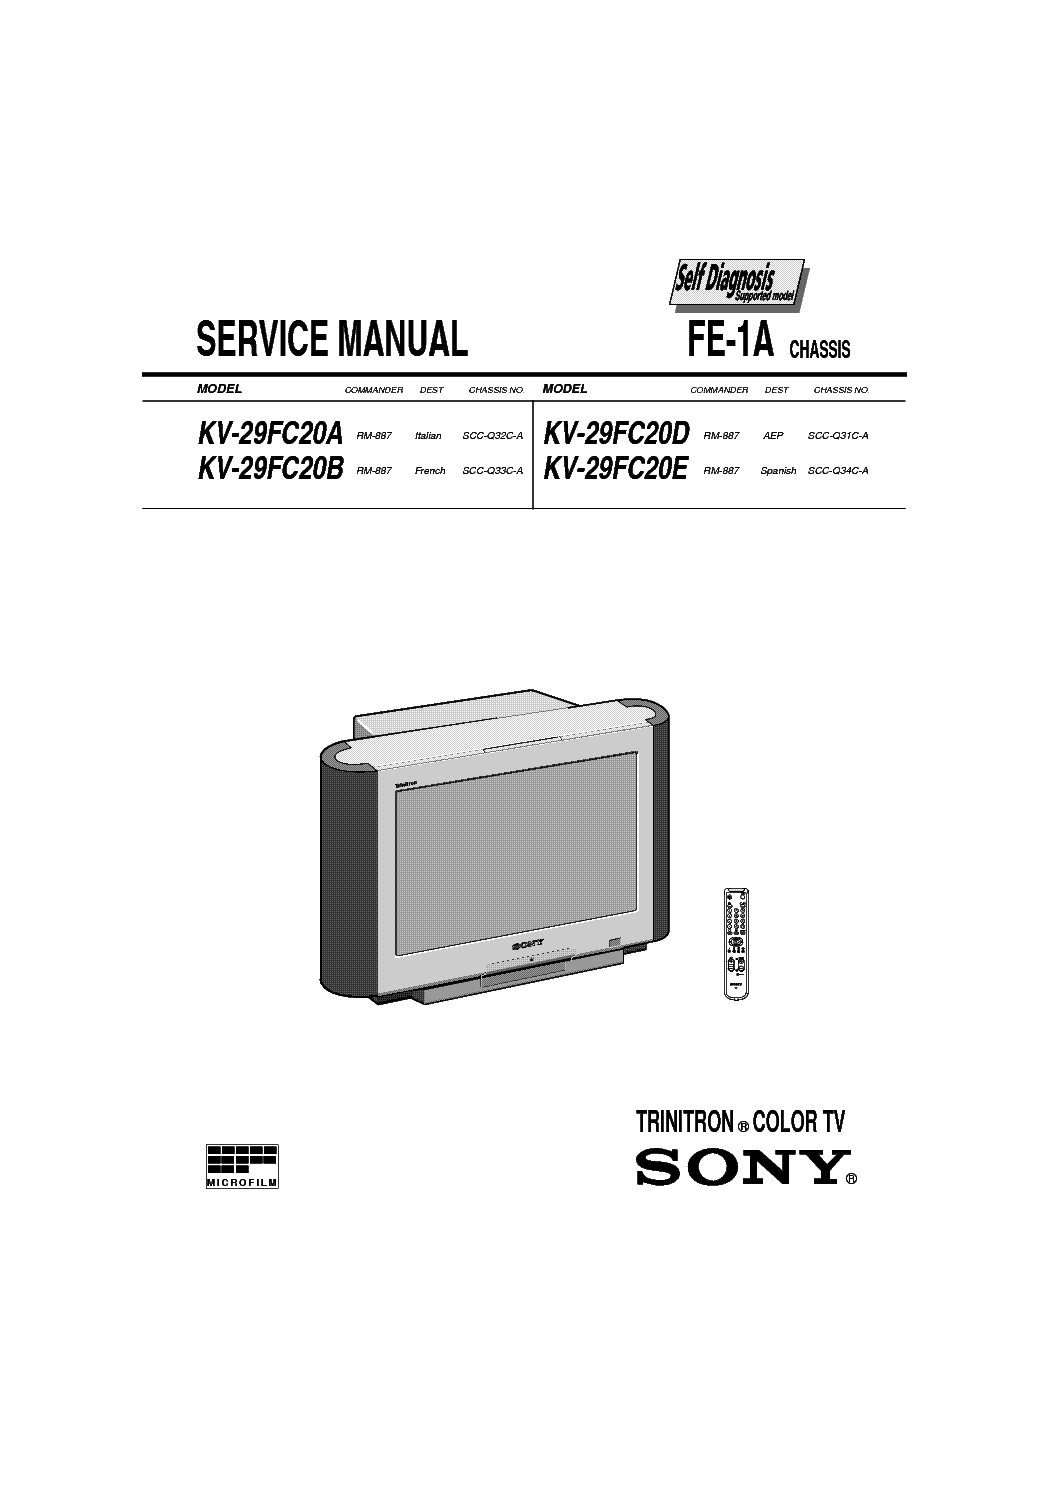 Sony Kv 20fs12 Chassis Ba 5 Training Manual Service Manual Free Download Schematics Eeprom